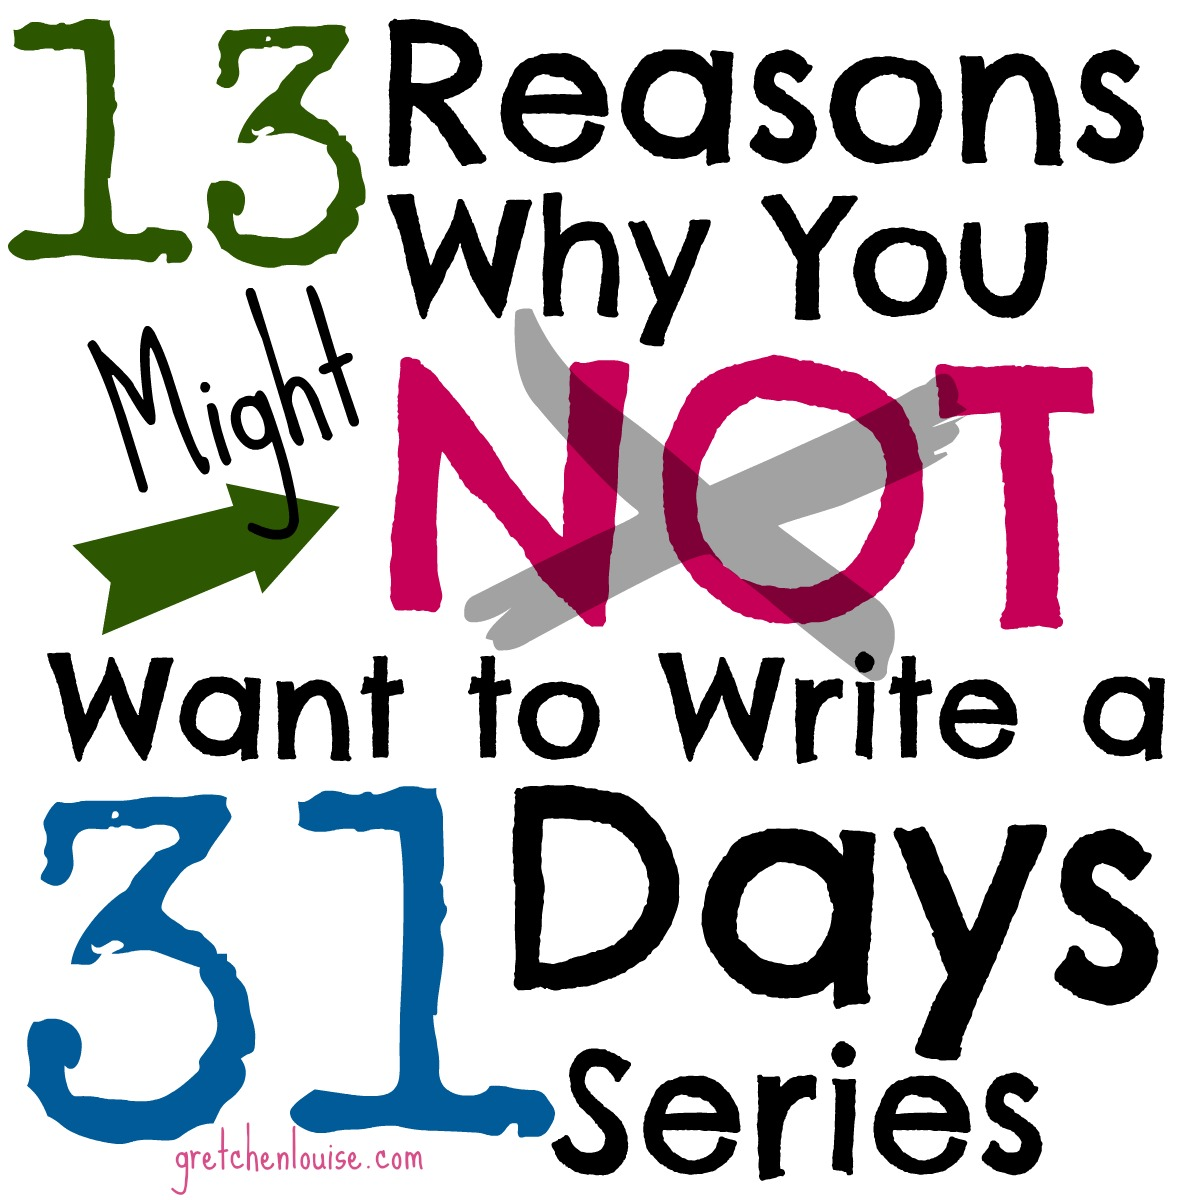 13 Reasons Why You Might Not Want to Write a #Write31Days Series